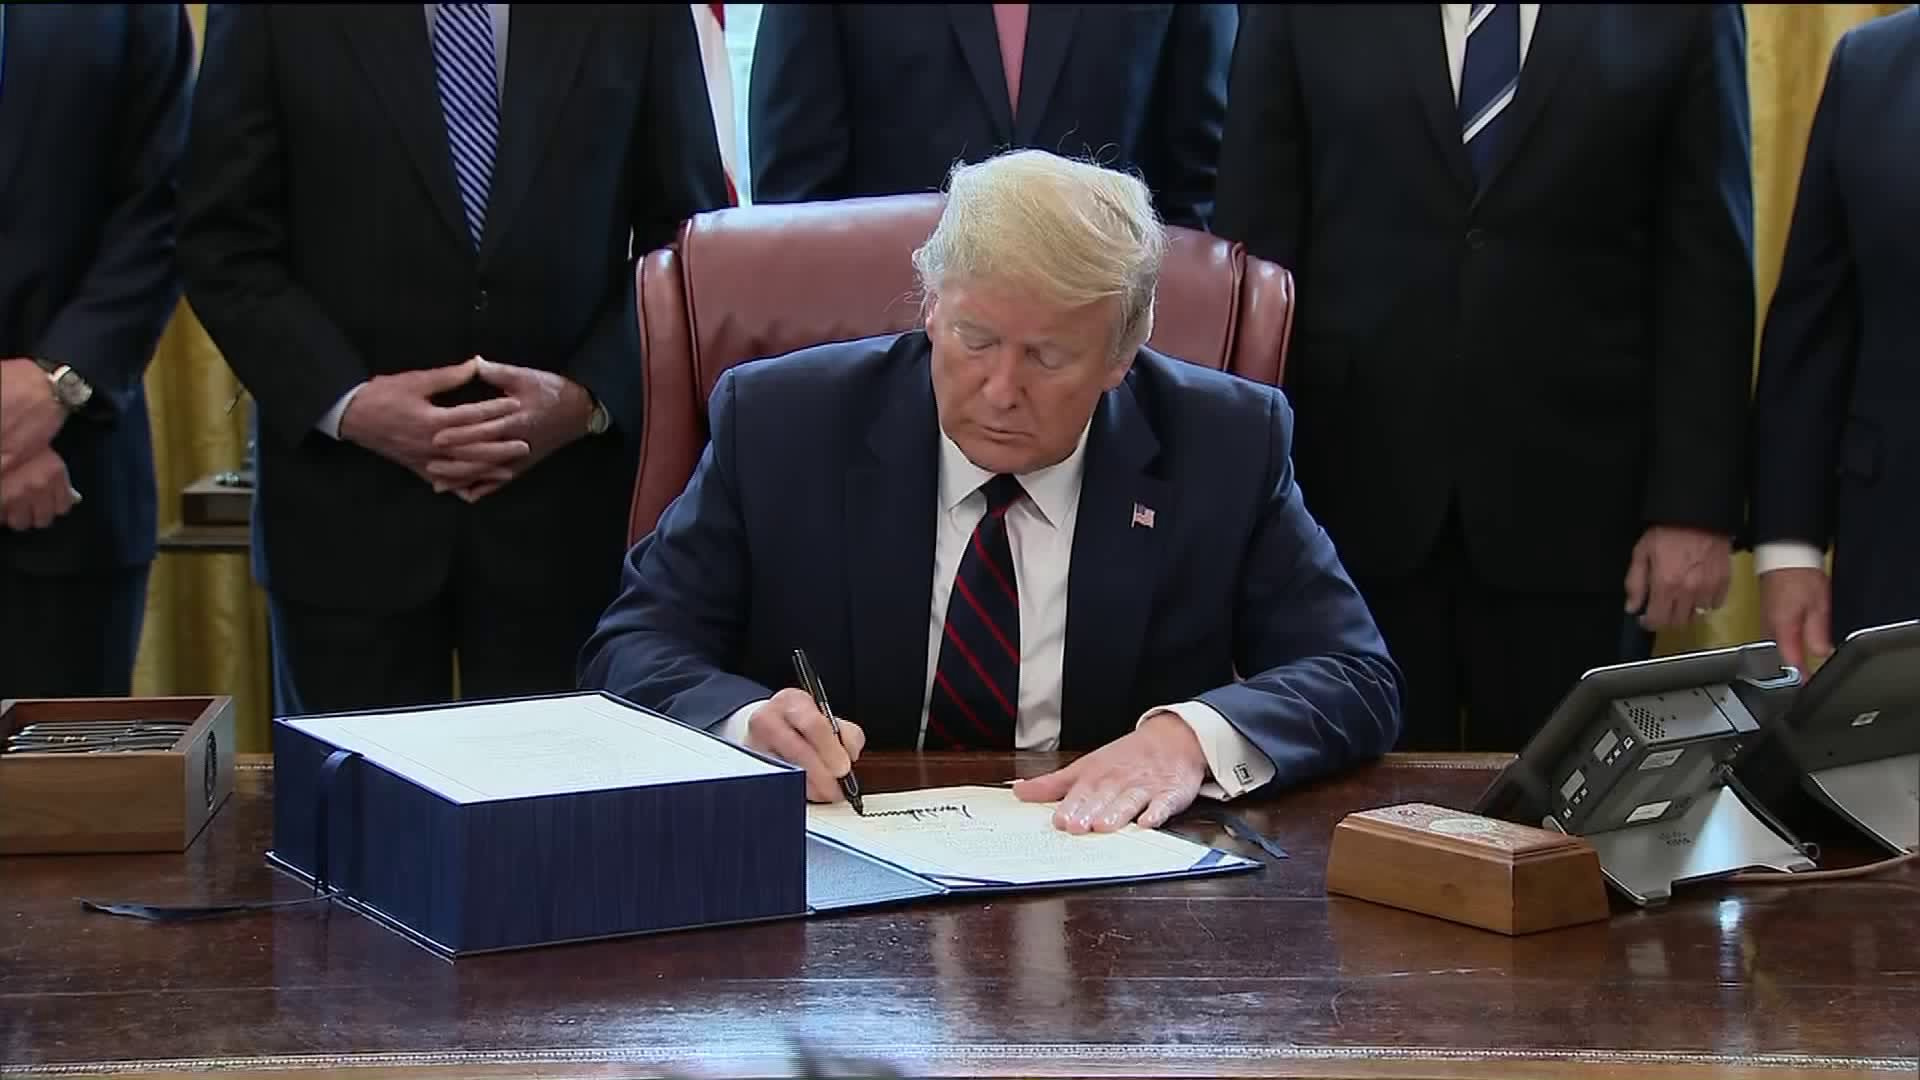 President Donald Trump signs a $2.2 trillion stimulus package to aid in COVID-19 recovery on March 27, 2020. (Credit: KTLA)